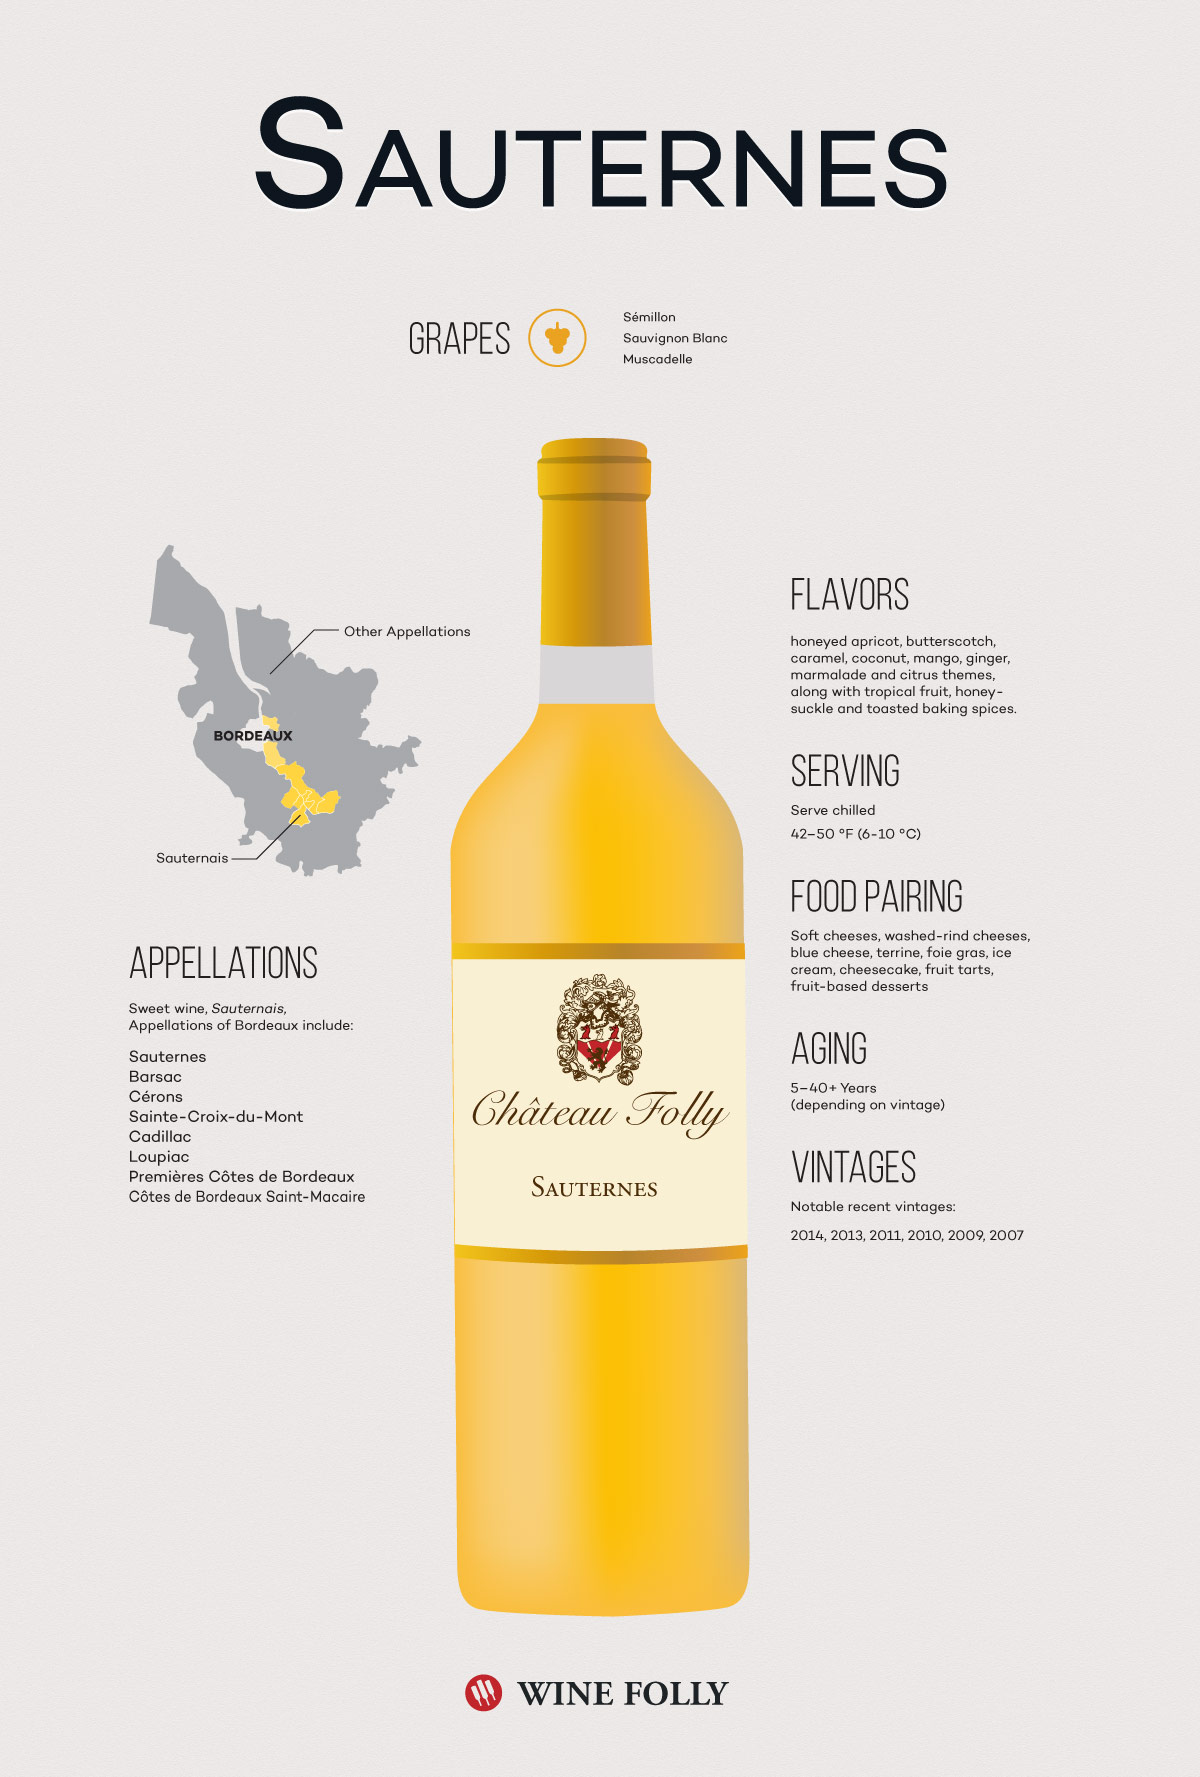 Sauternes Wine Illustration Infographic by Wine Folly